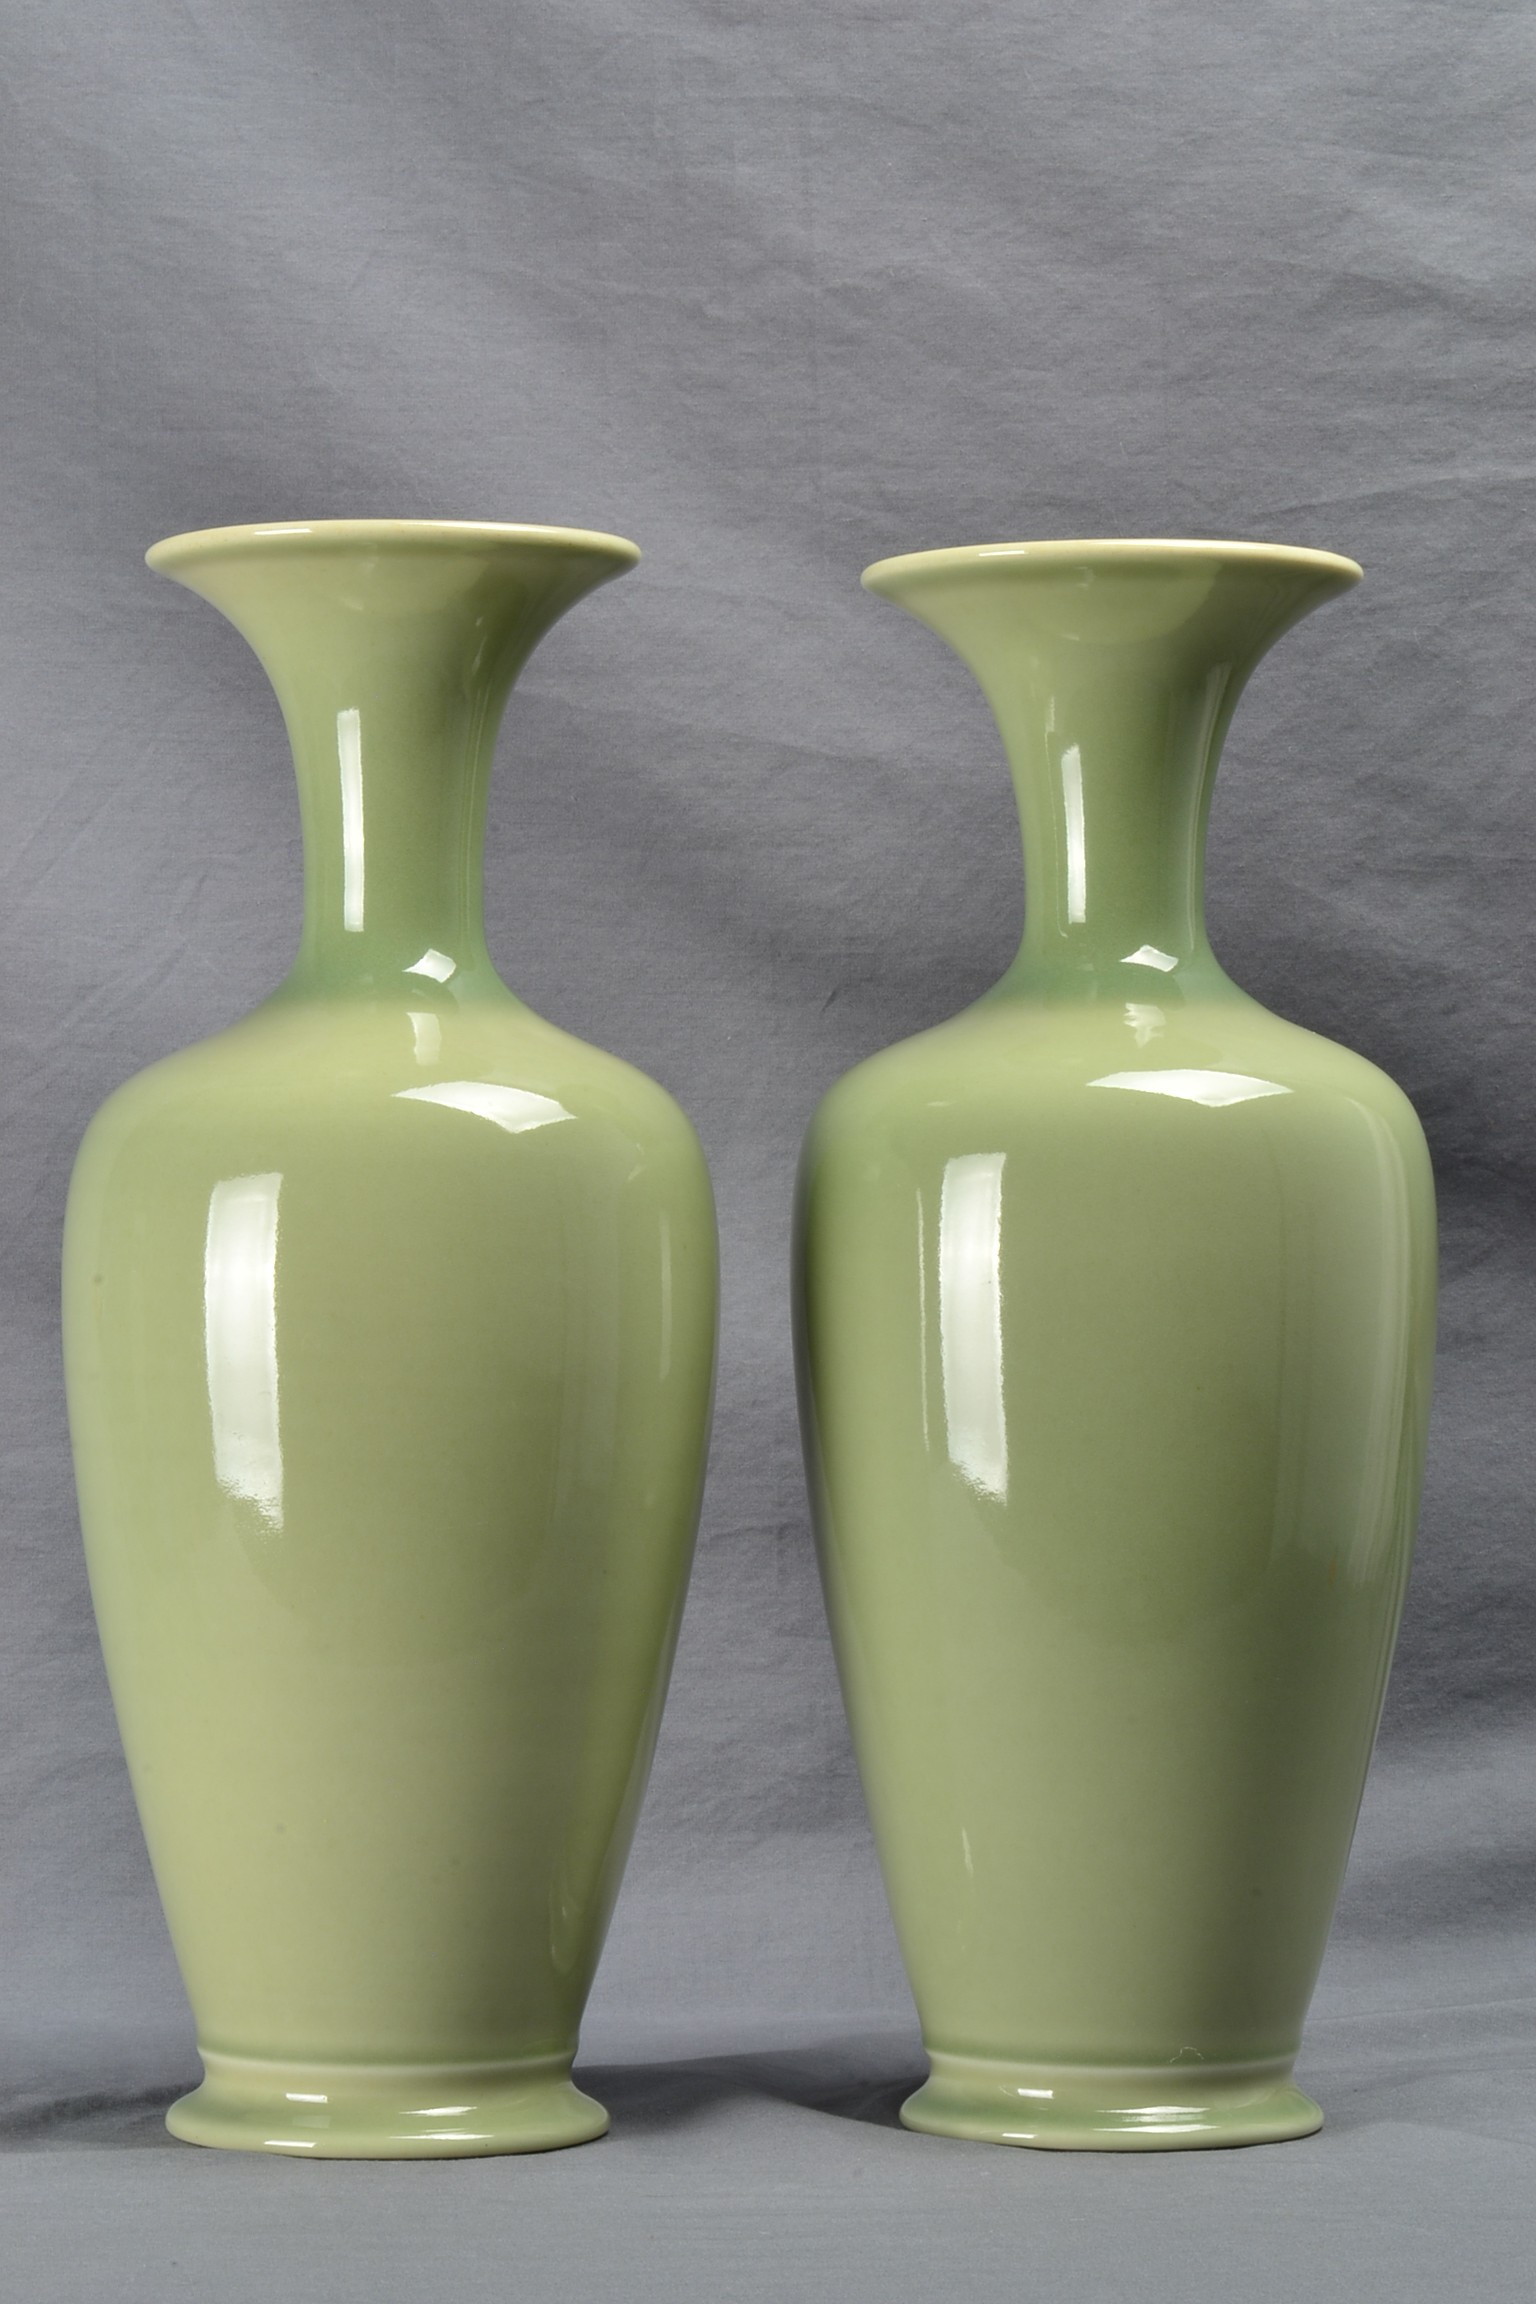 Vintage Rookwood Pottery Vases Celadon Green Shape 216 1942 Rookwood Pottery Products